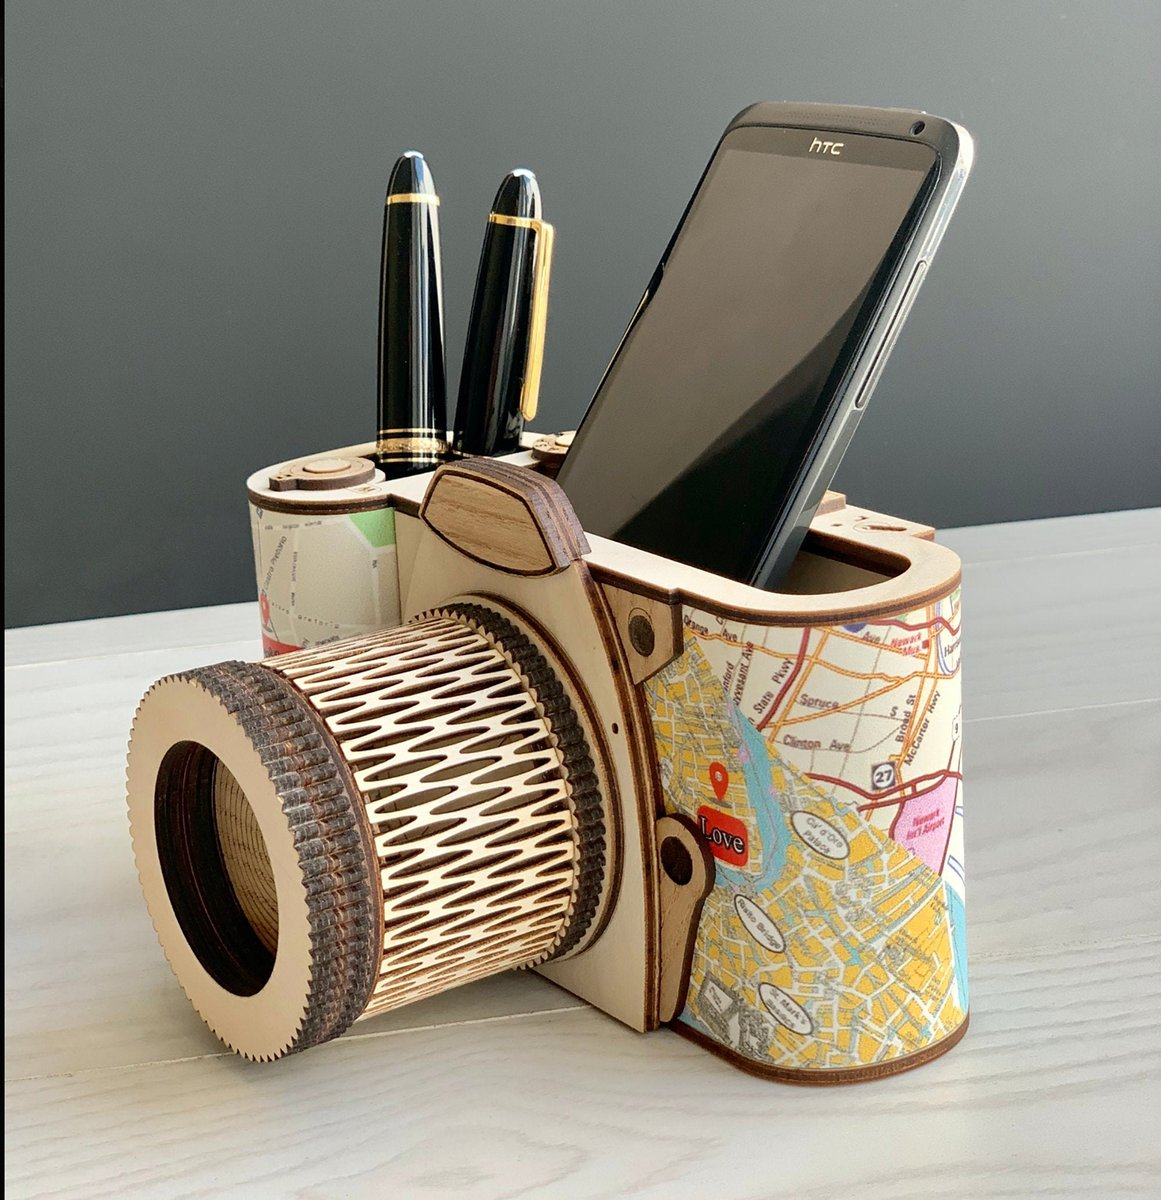 Excited to share the latest addition to my #etsy shop: Love Story Gift/MakeUp organizer/Wooden Photo camera with engraving/ Phone holder/ Desk organizer for stationery and phone/Wooden holder  #beige #blue #lovestorygift #makeuporganizer #lovesto